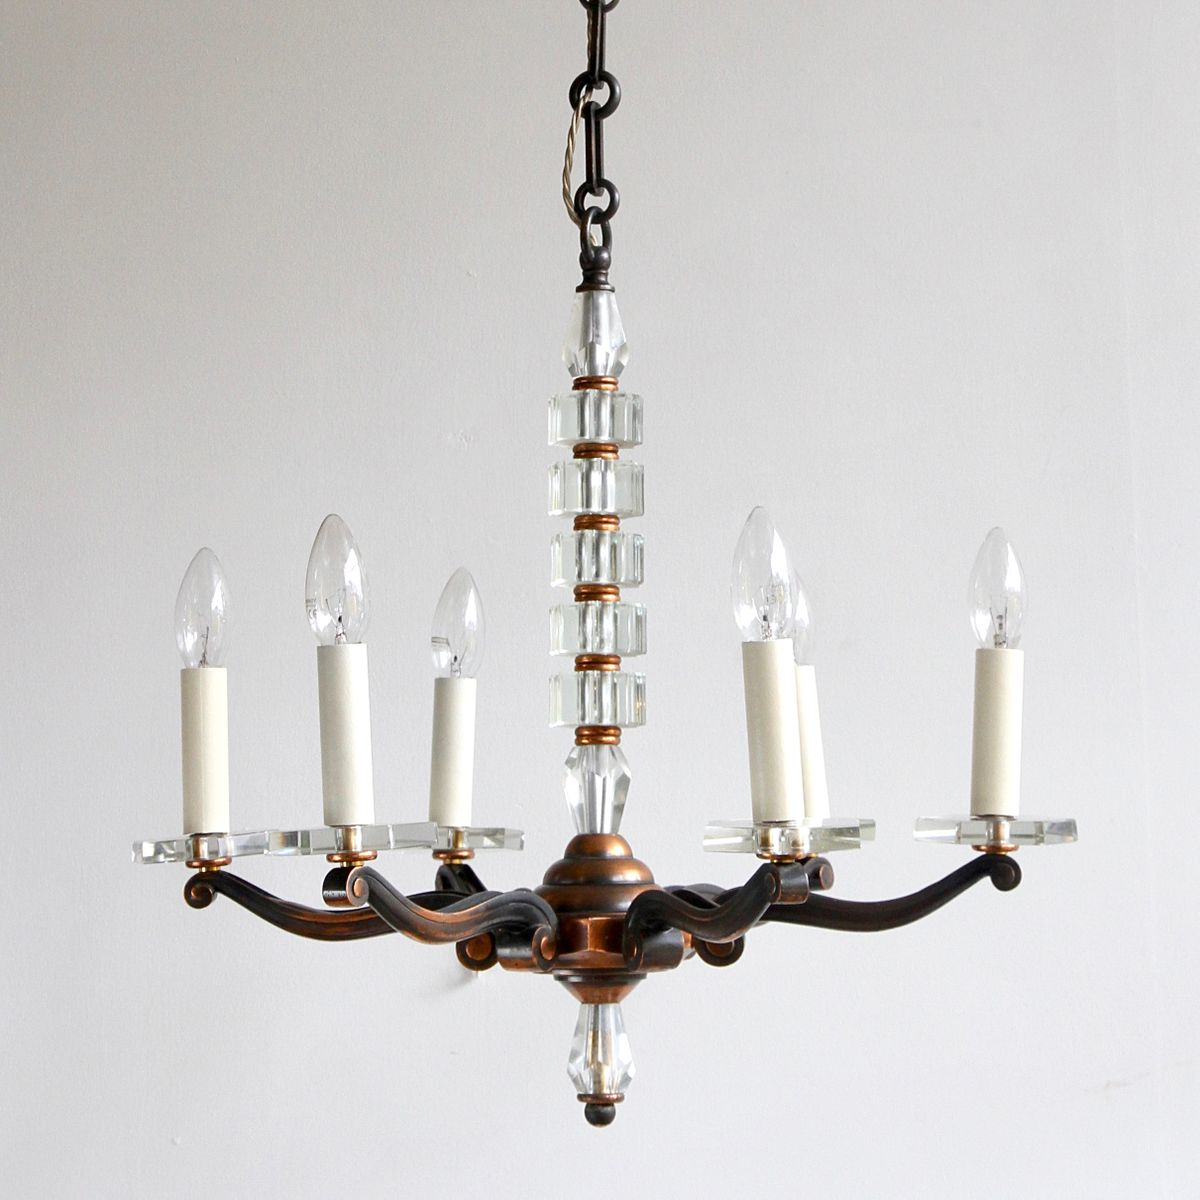 Copper and crystal chandelier 1930s for sale at pamono copper and crystal chandelier 1930s aloadofball Gallery